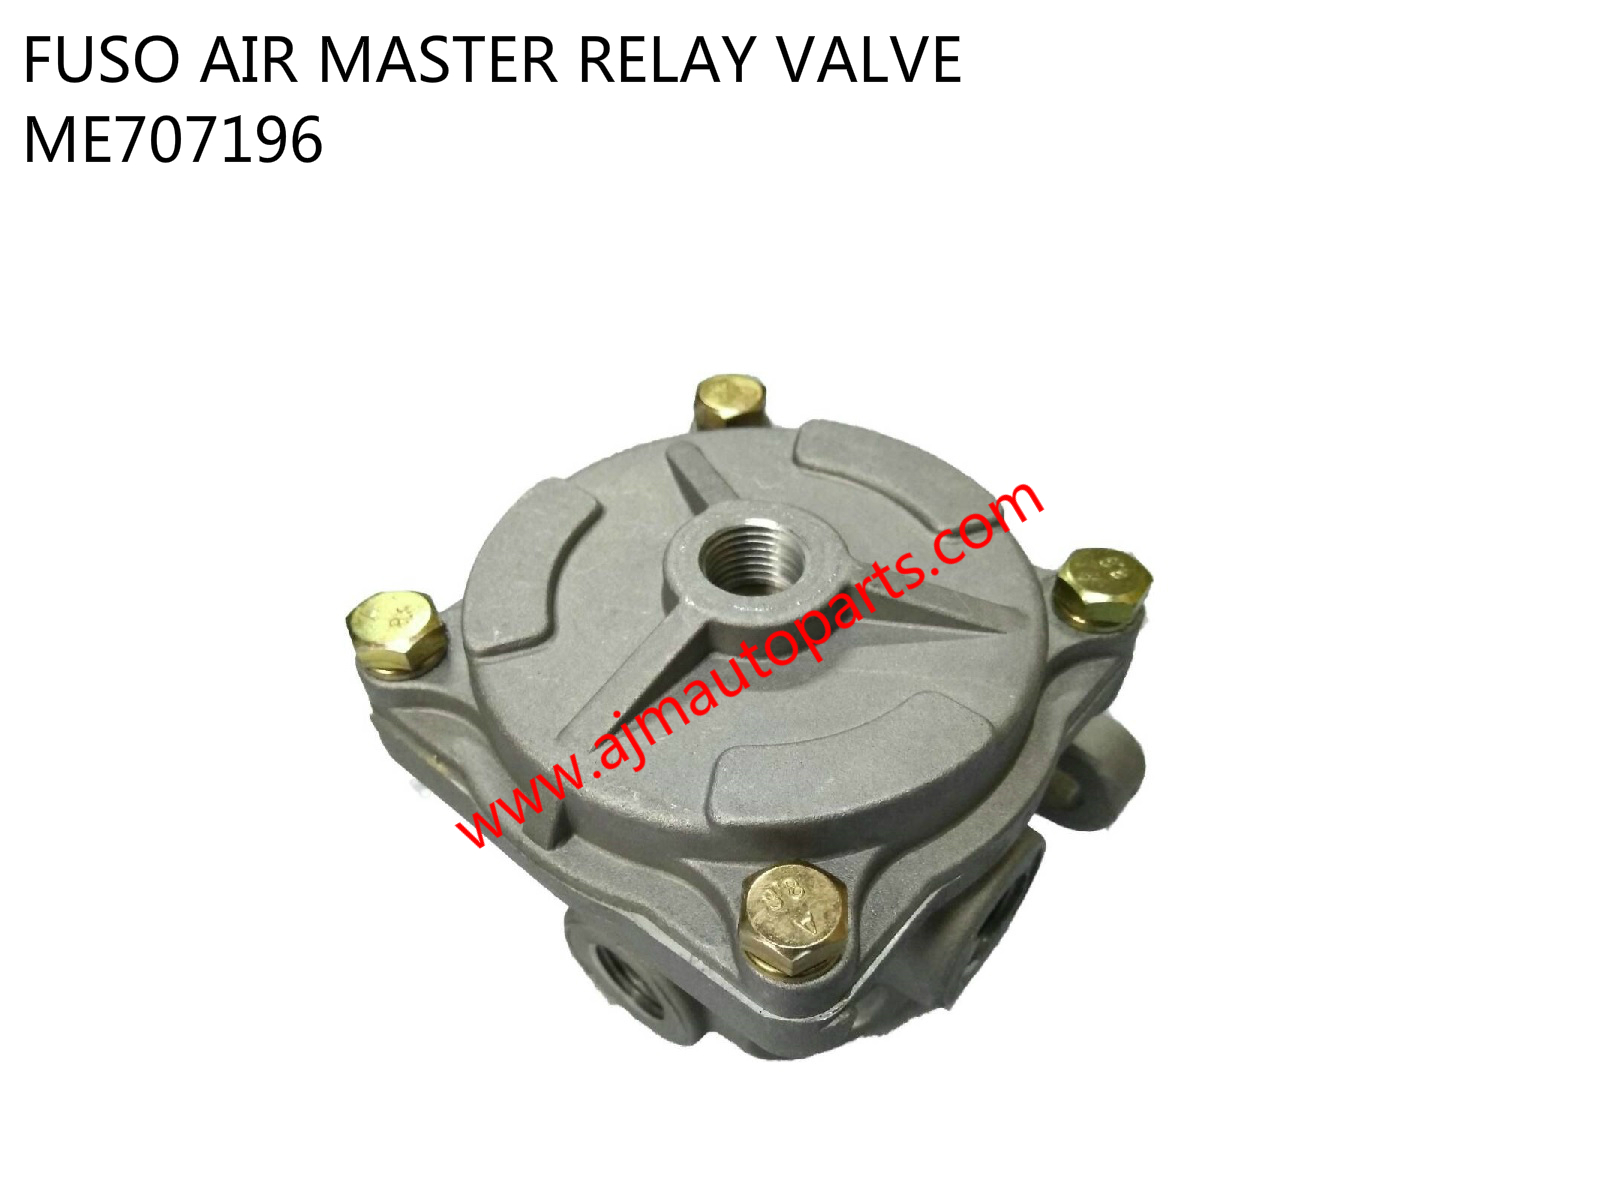 FUSO AIR MASTER RELAY VALVE-ME707196